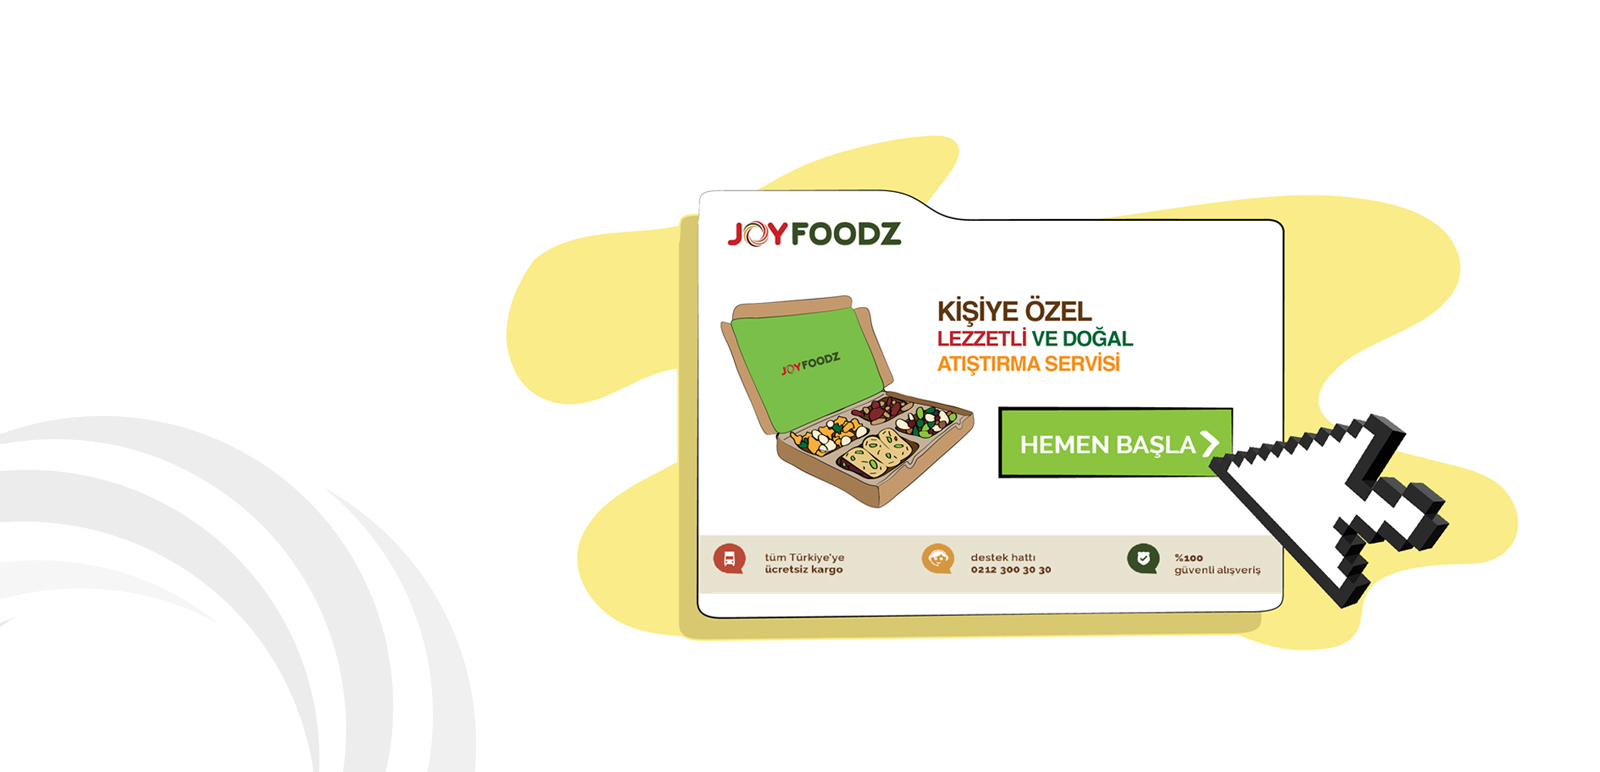 Joyfoodz Animation, Illustration 6